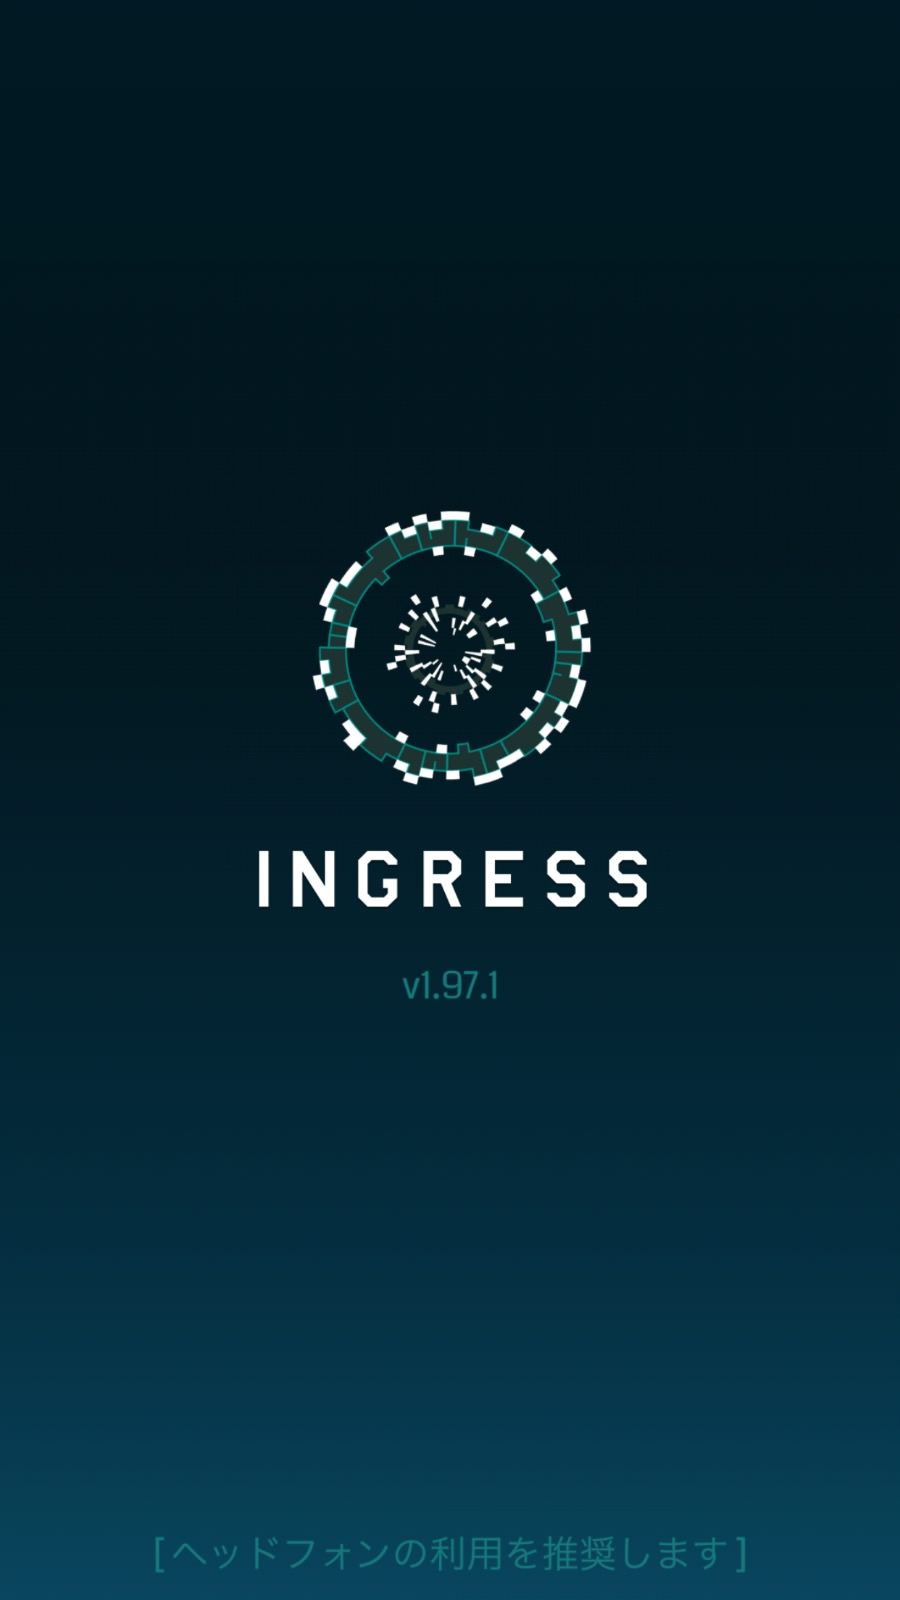 【Ingress】iOS版「Ingress 1.97.1」リリース